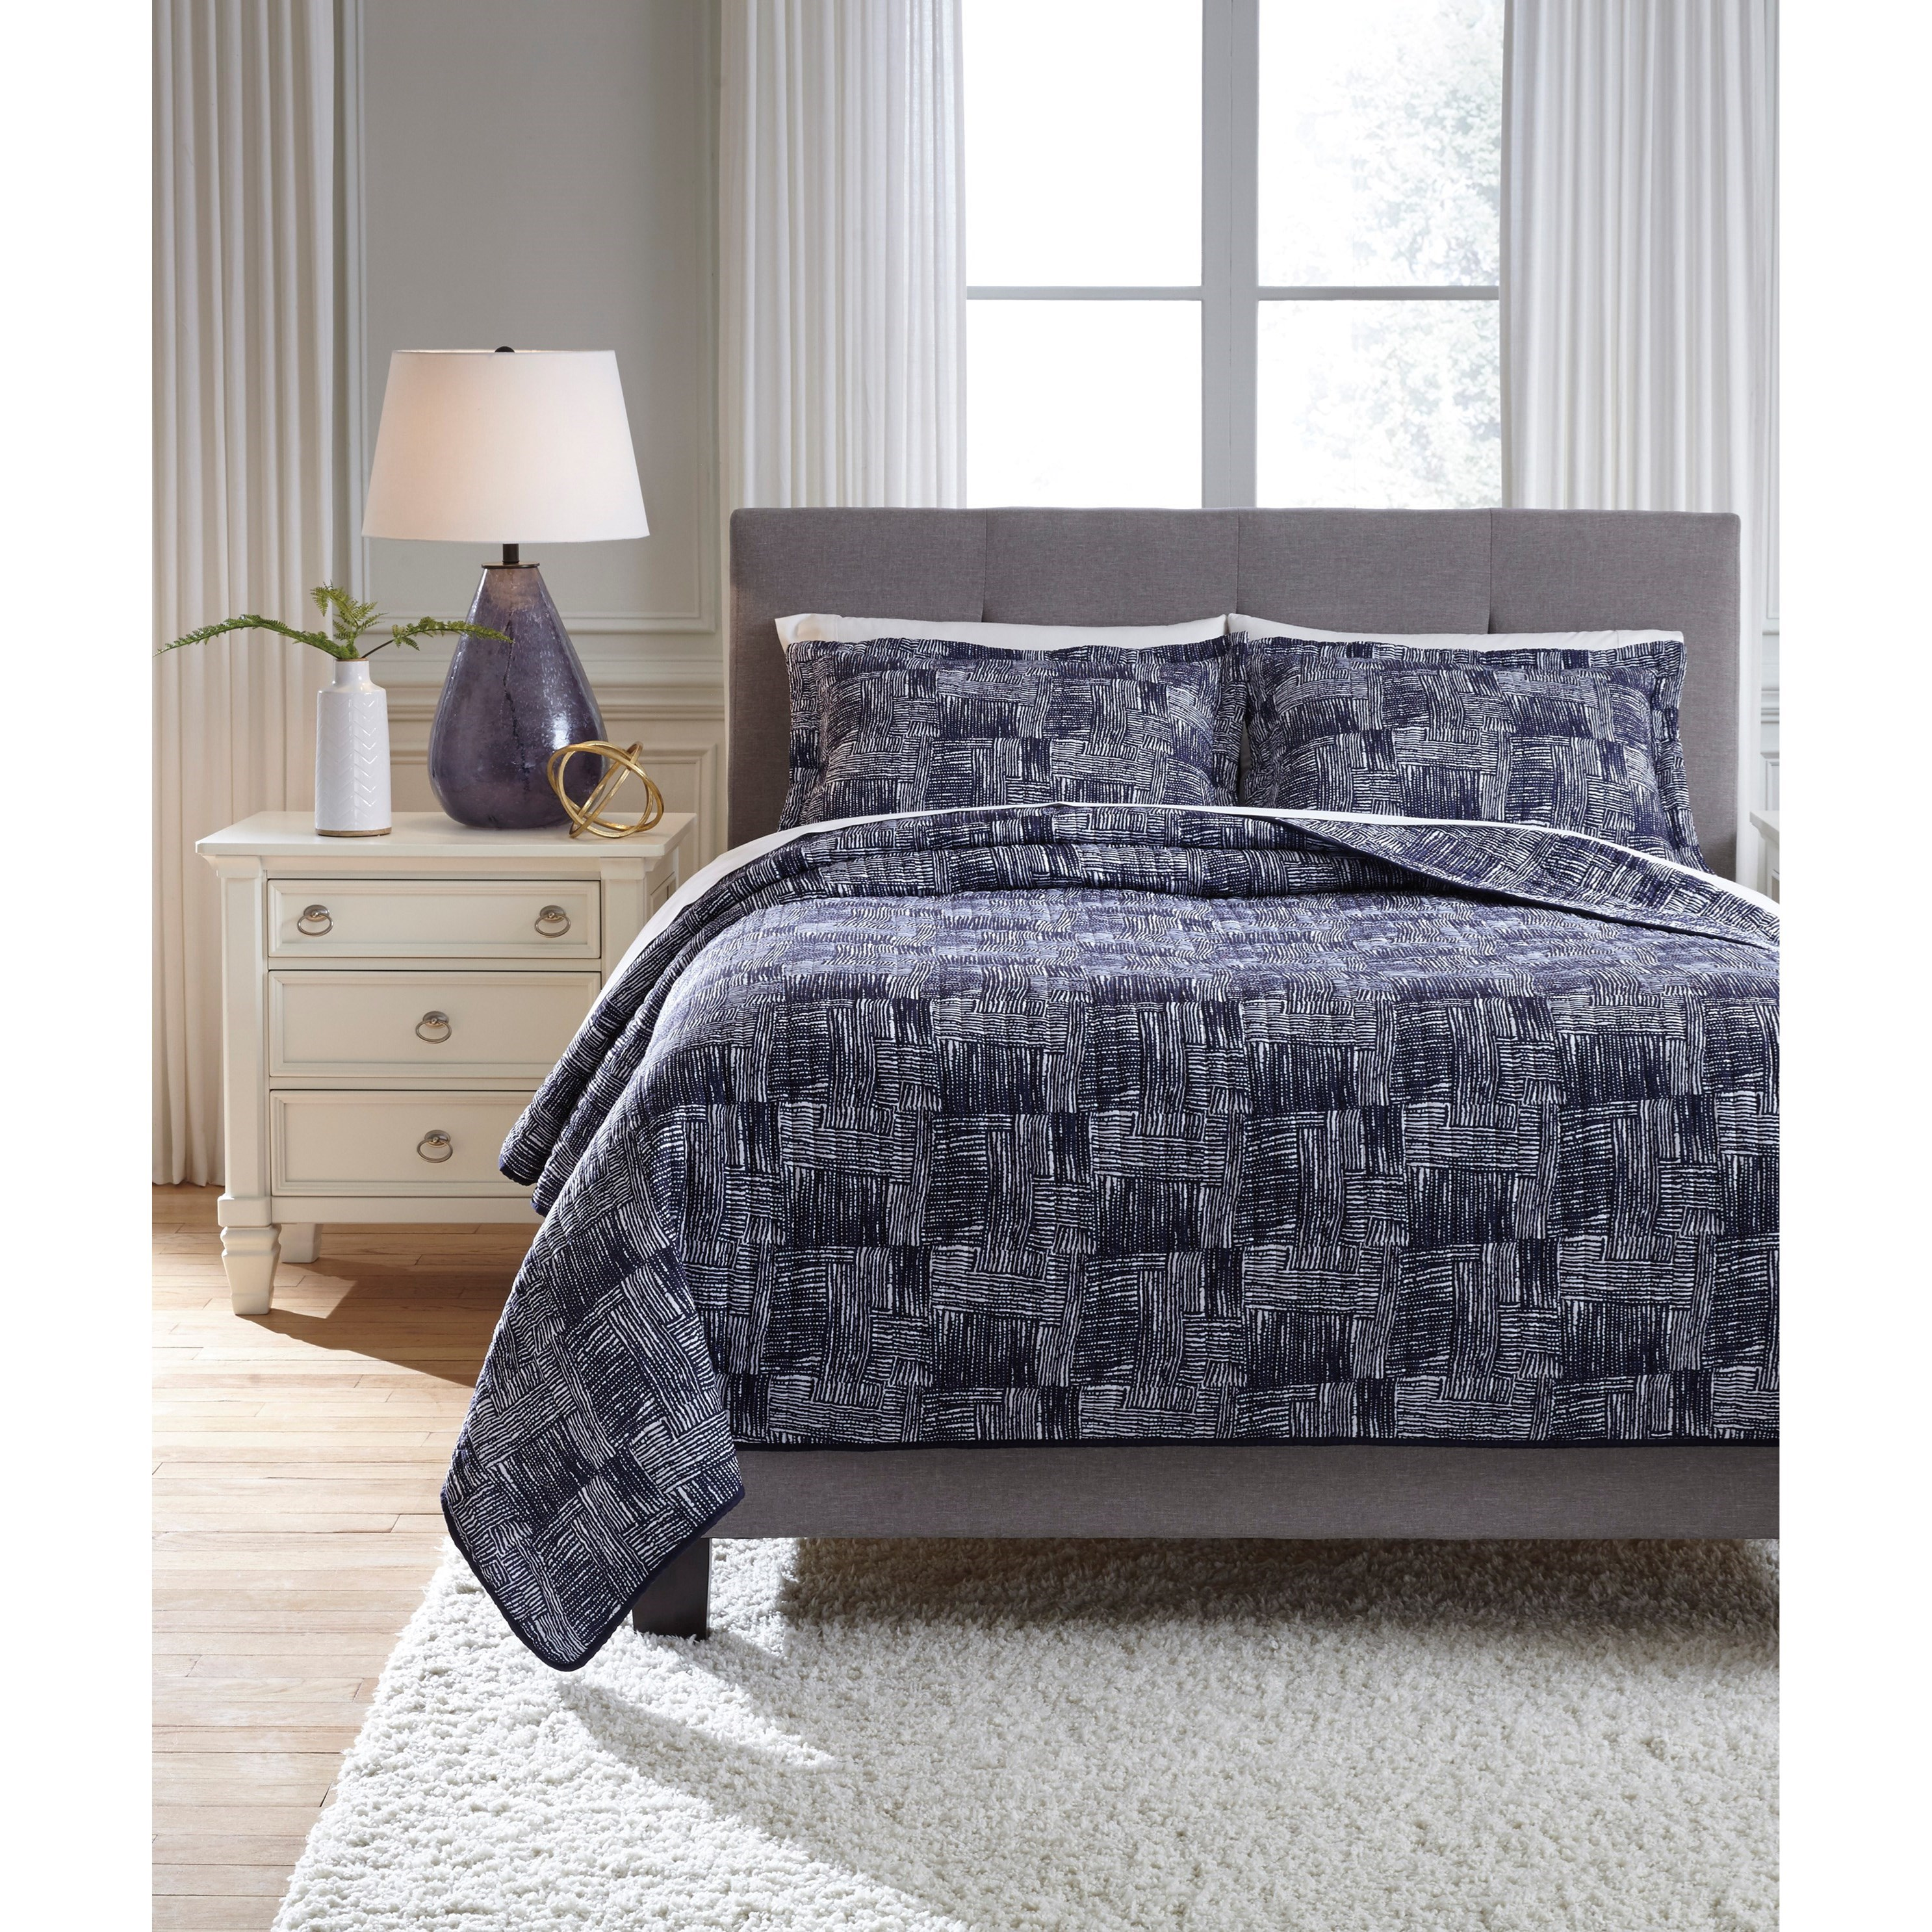 Quilt Sets Bedding Sets King Jabesh Navy Quilt Set By Styleline At Efo Furniture Outlet